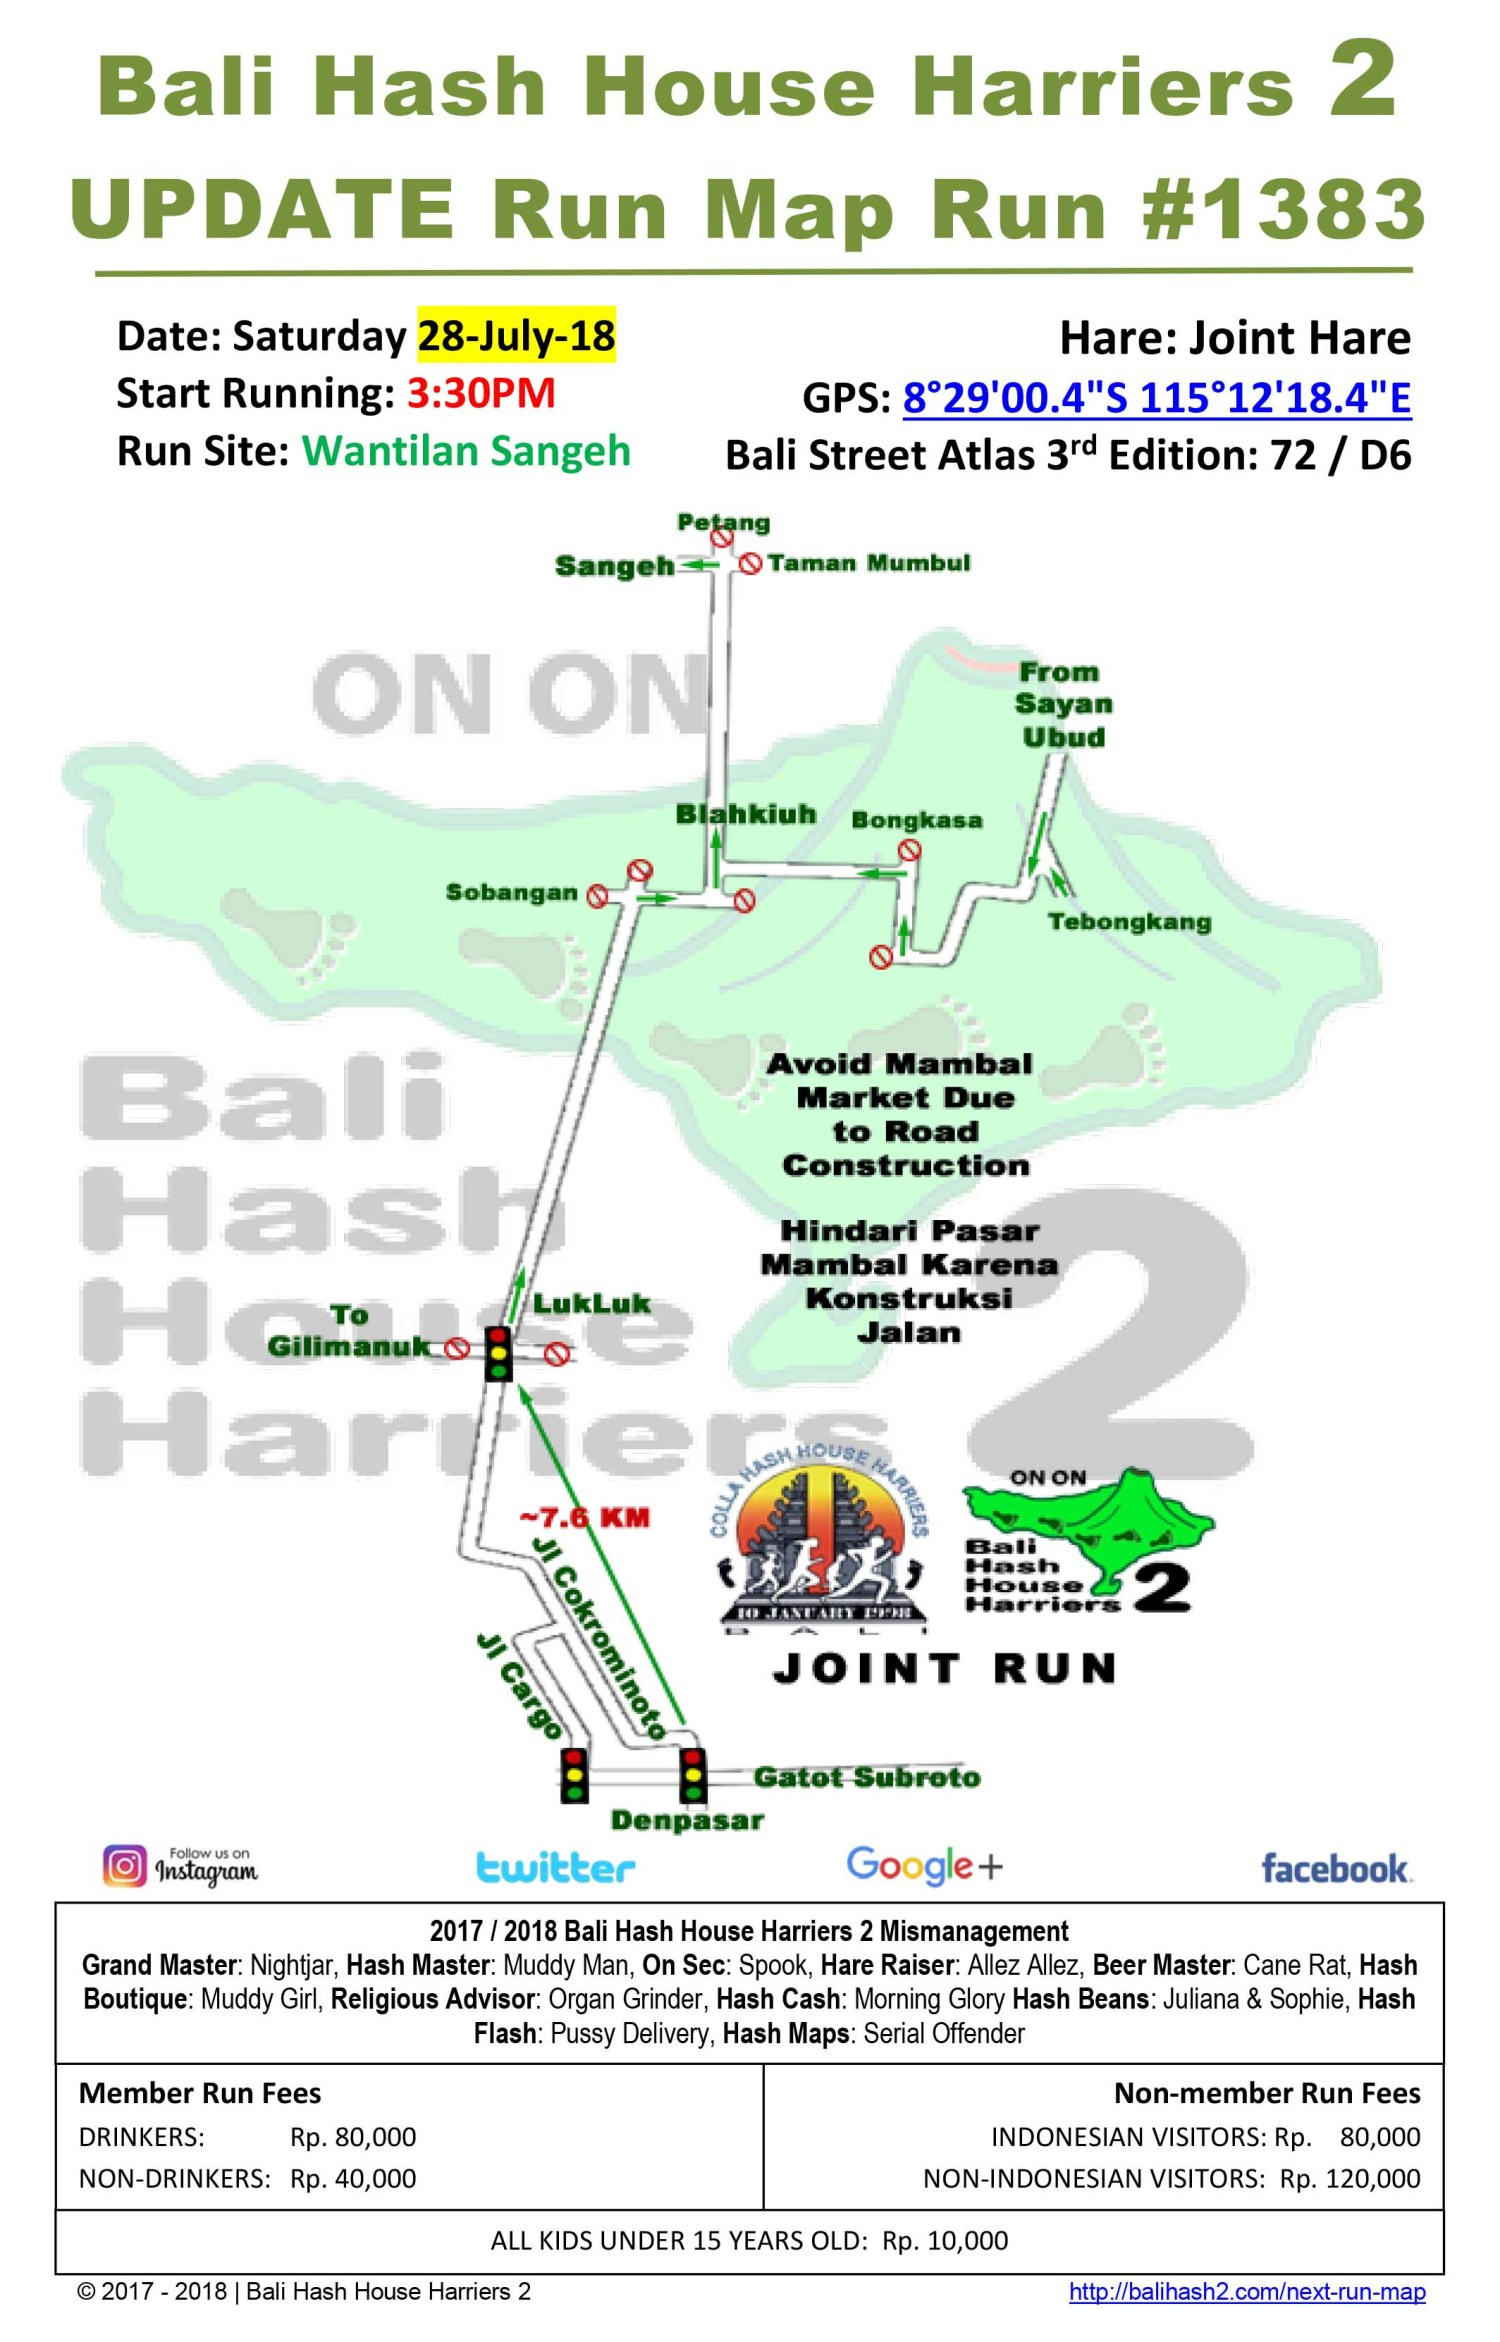 Bali Hash House Harriers BHHH2 Run Map Update Run #1383 Wantilan Sangeh 28-Jul-18